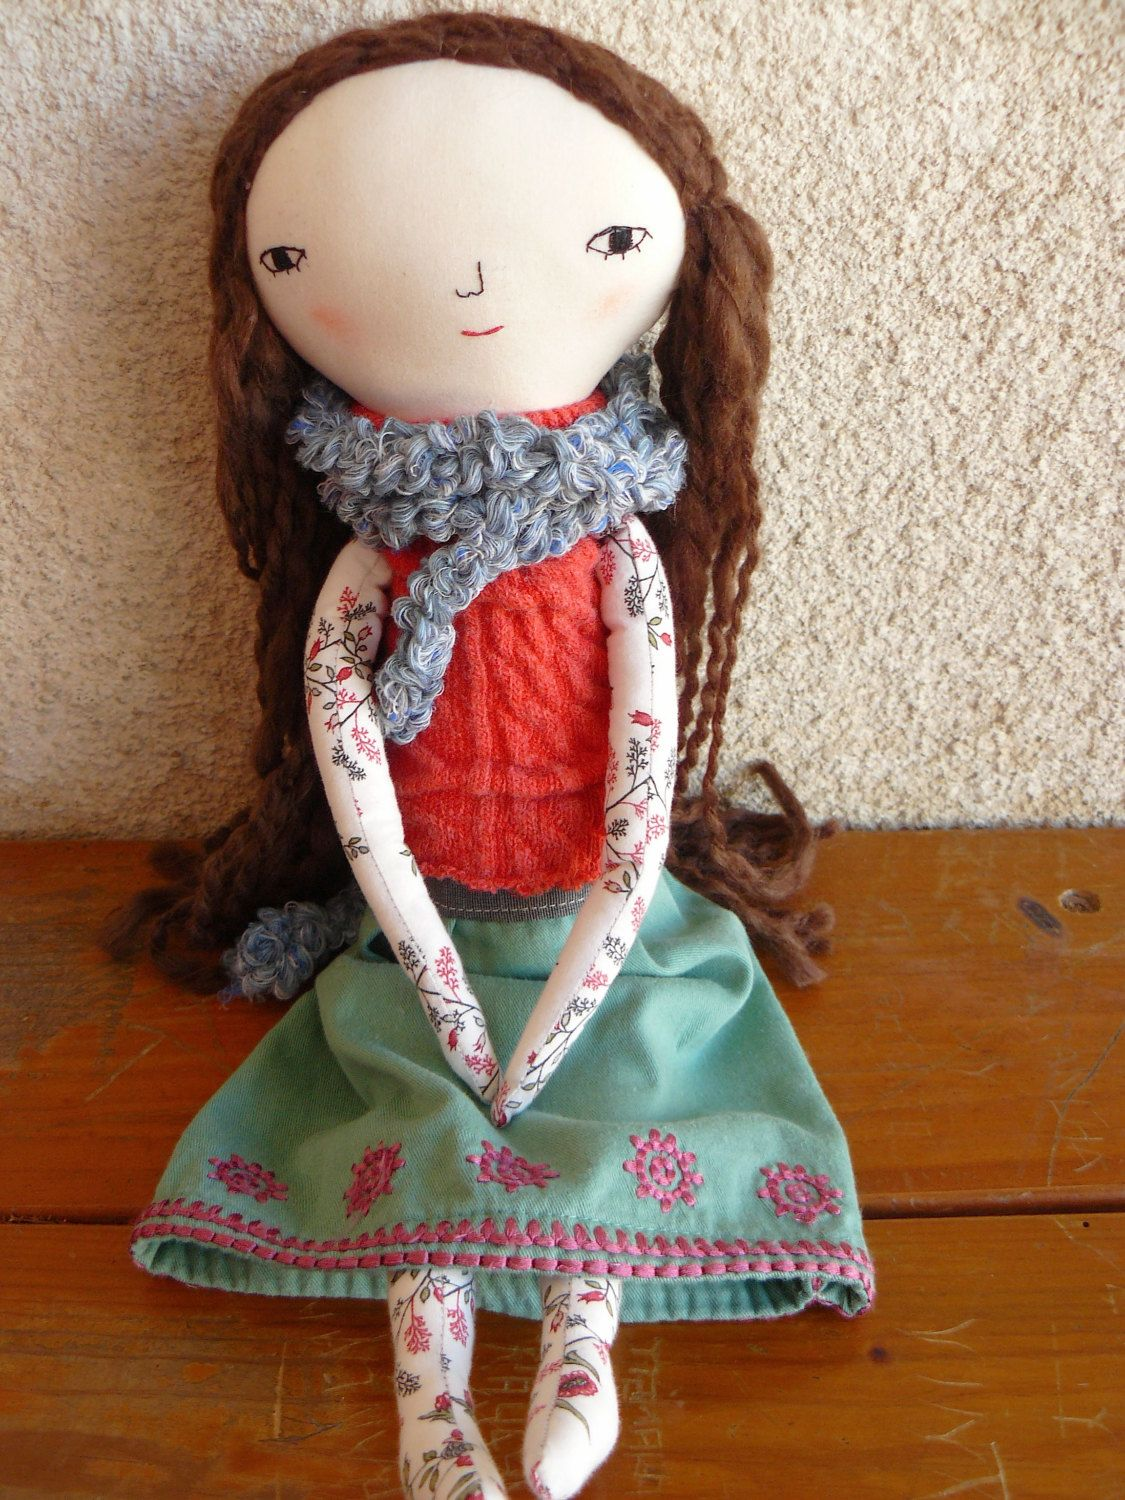 Big size doll in cotton canvas with reversible face (awake and asleep)